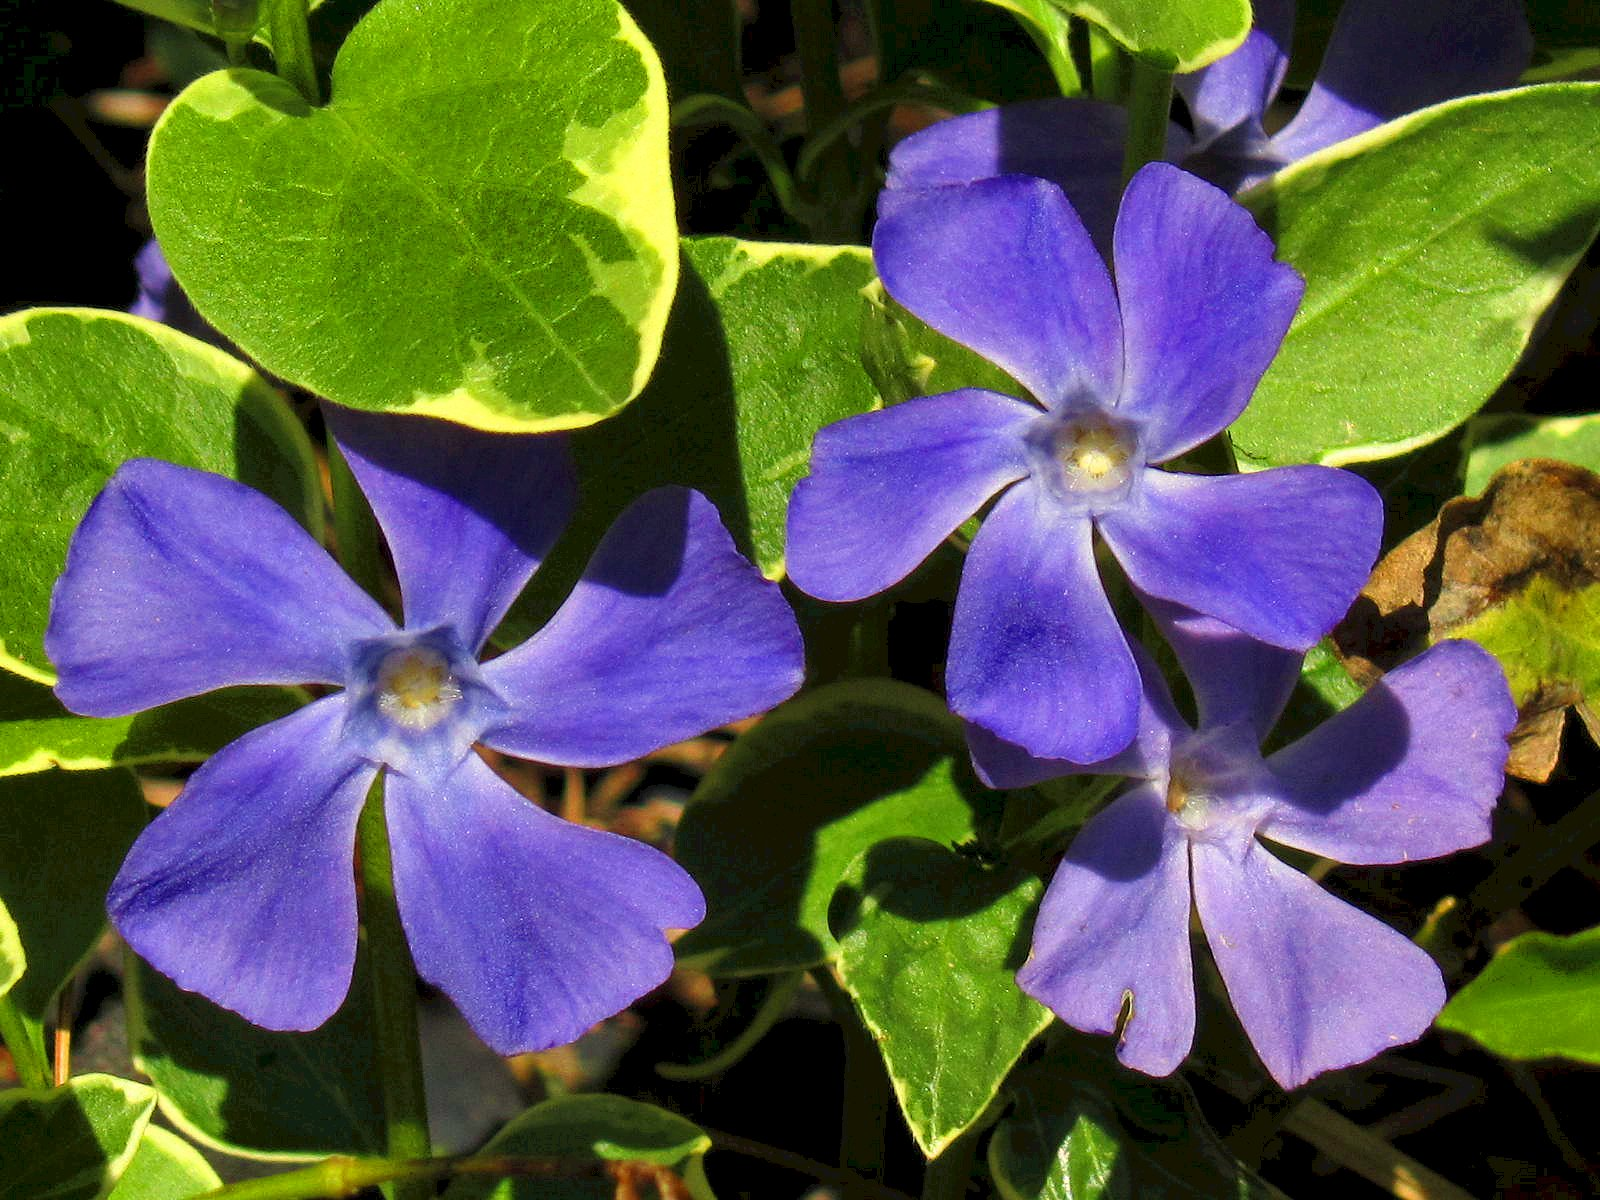 Vinca flowers under the sun and under the moon looking exactly like their wild cousin these beautiful flowers grow abundantly on the common vining garden plant vinca which i personally have a love hate mightylinksfo